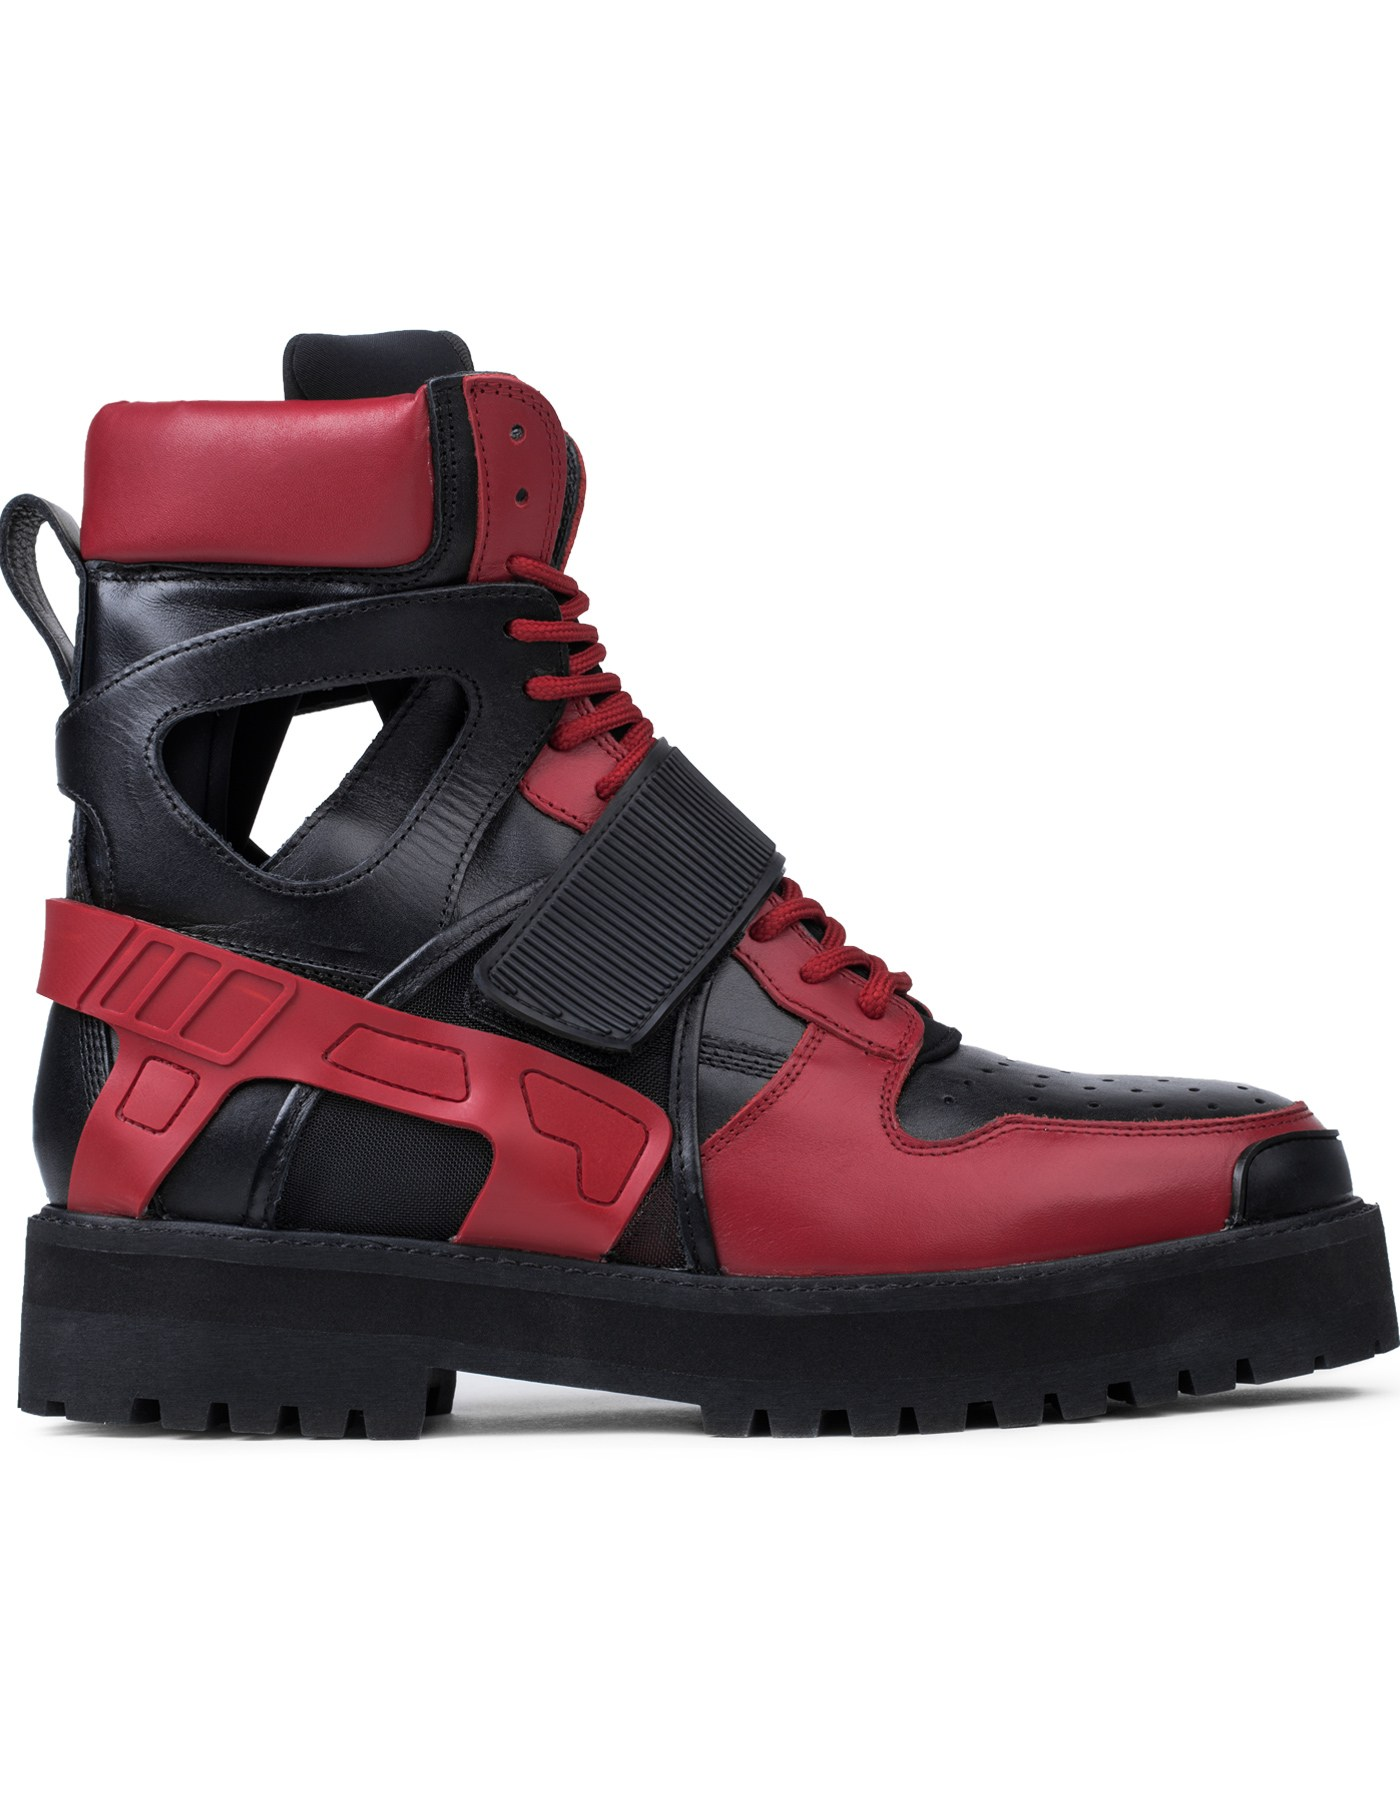 Buy Original Hood By Air Hba X Forfex Avalanche Boots At Indonesia